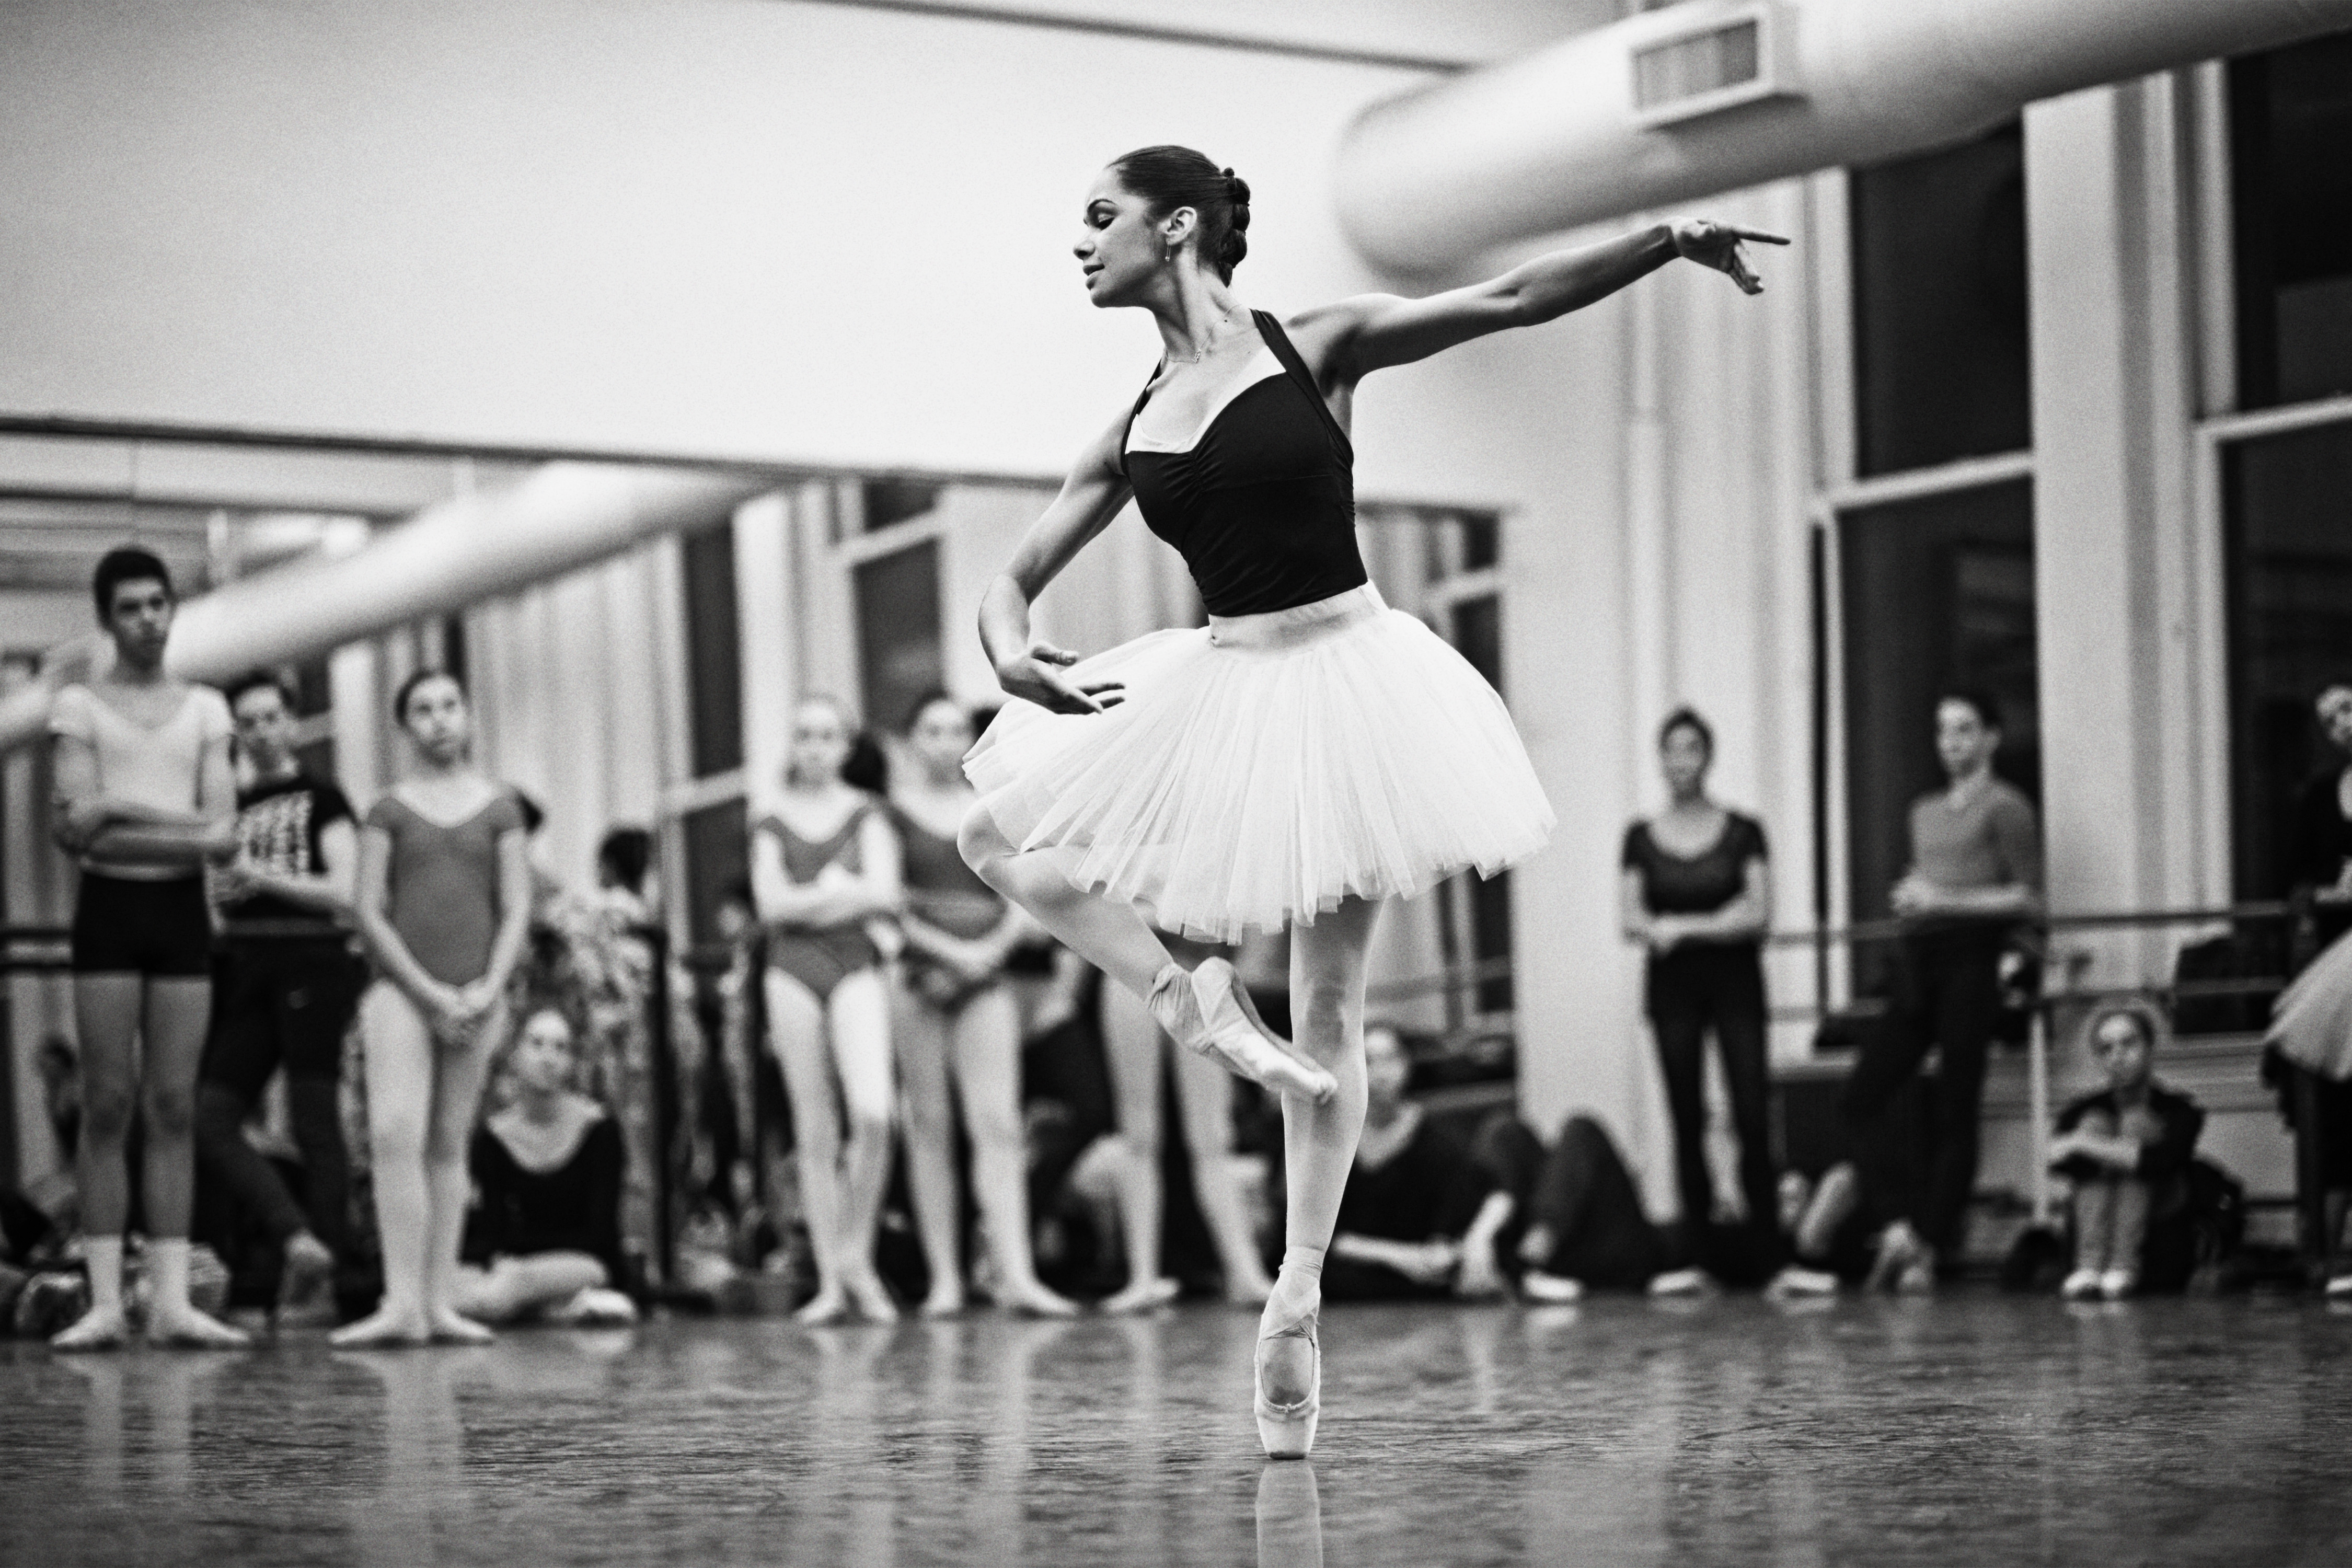 Photograph of author, entertainer, and  American ballet dancer Misty Copeland photographed for Time on February 24th, 2015 at the American Ballet Theater in New York.